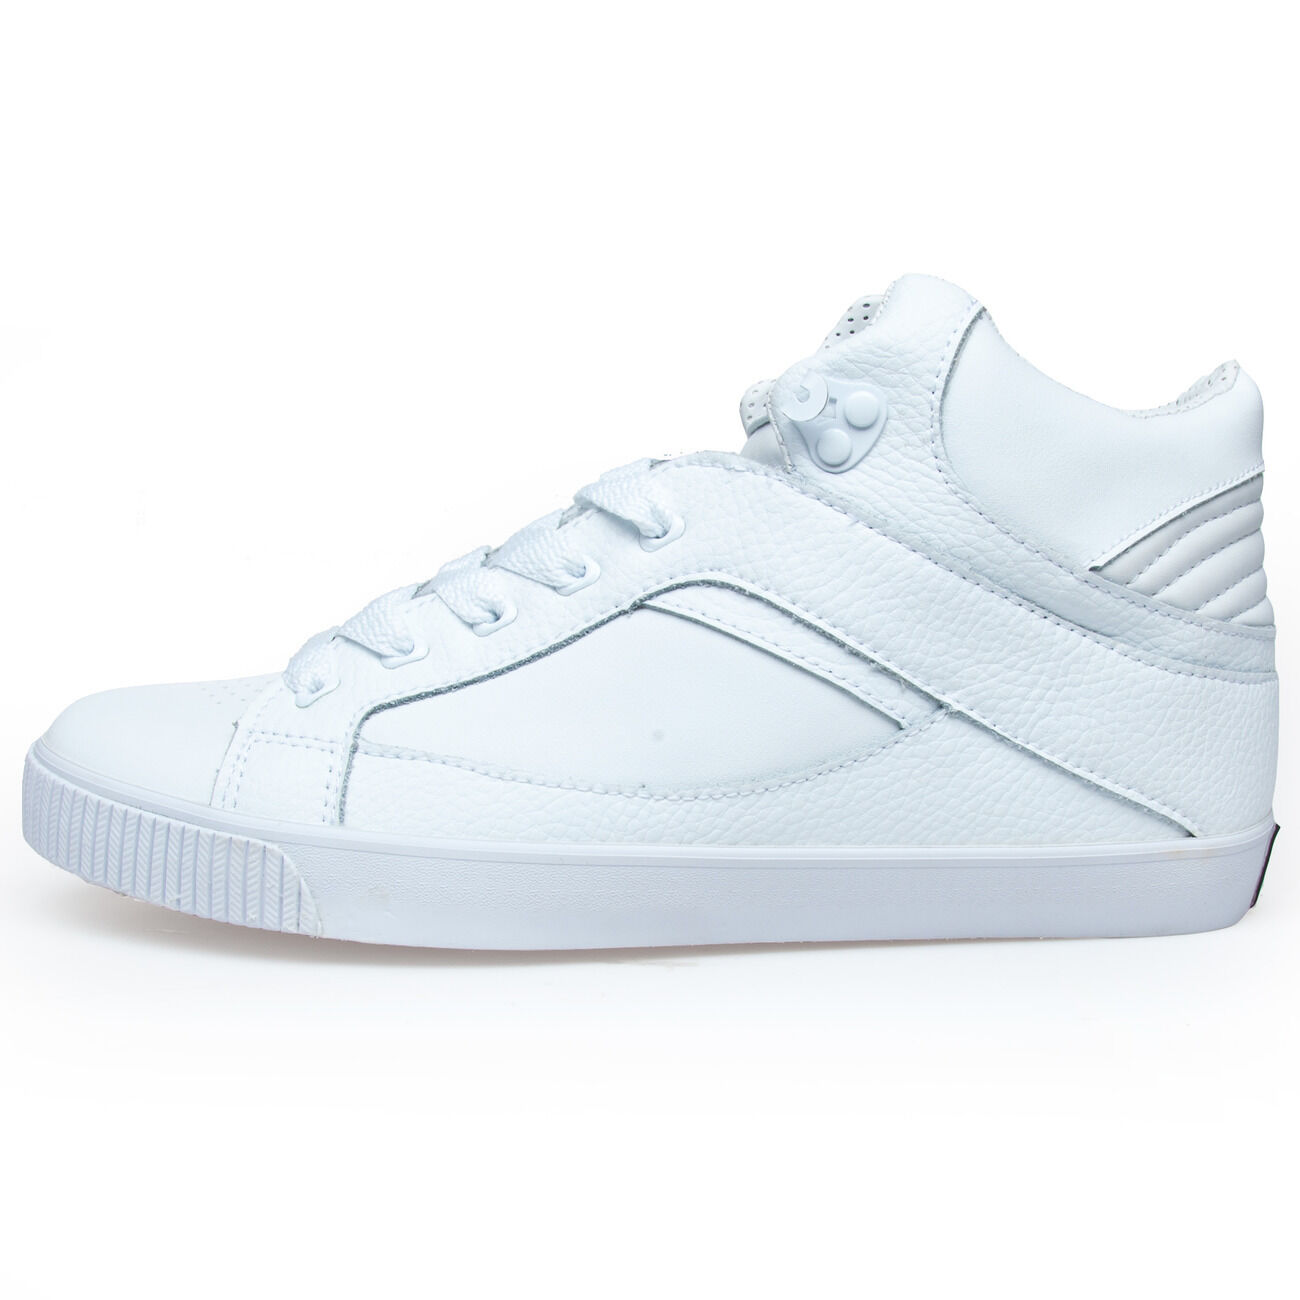 RUN ATHLETICS NYC Unisexe Hi Top Baskets Baskets Baskets de sport, eu41.5, 42.5 | La Réputation D'abord